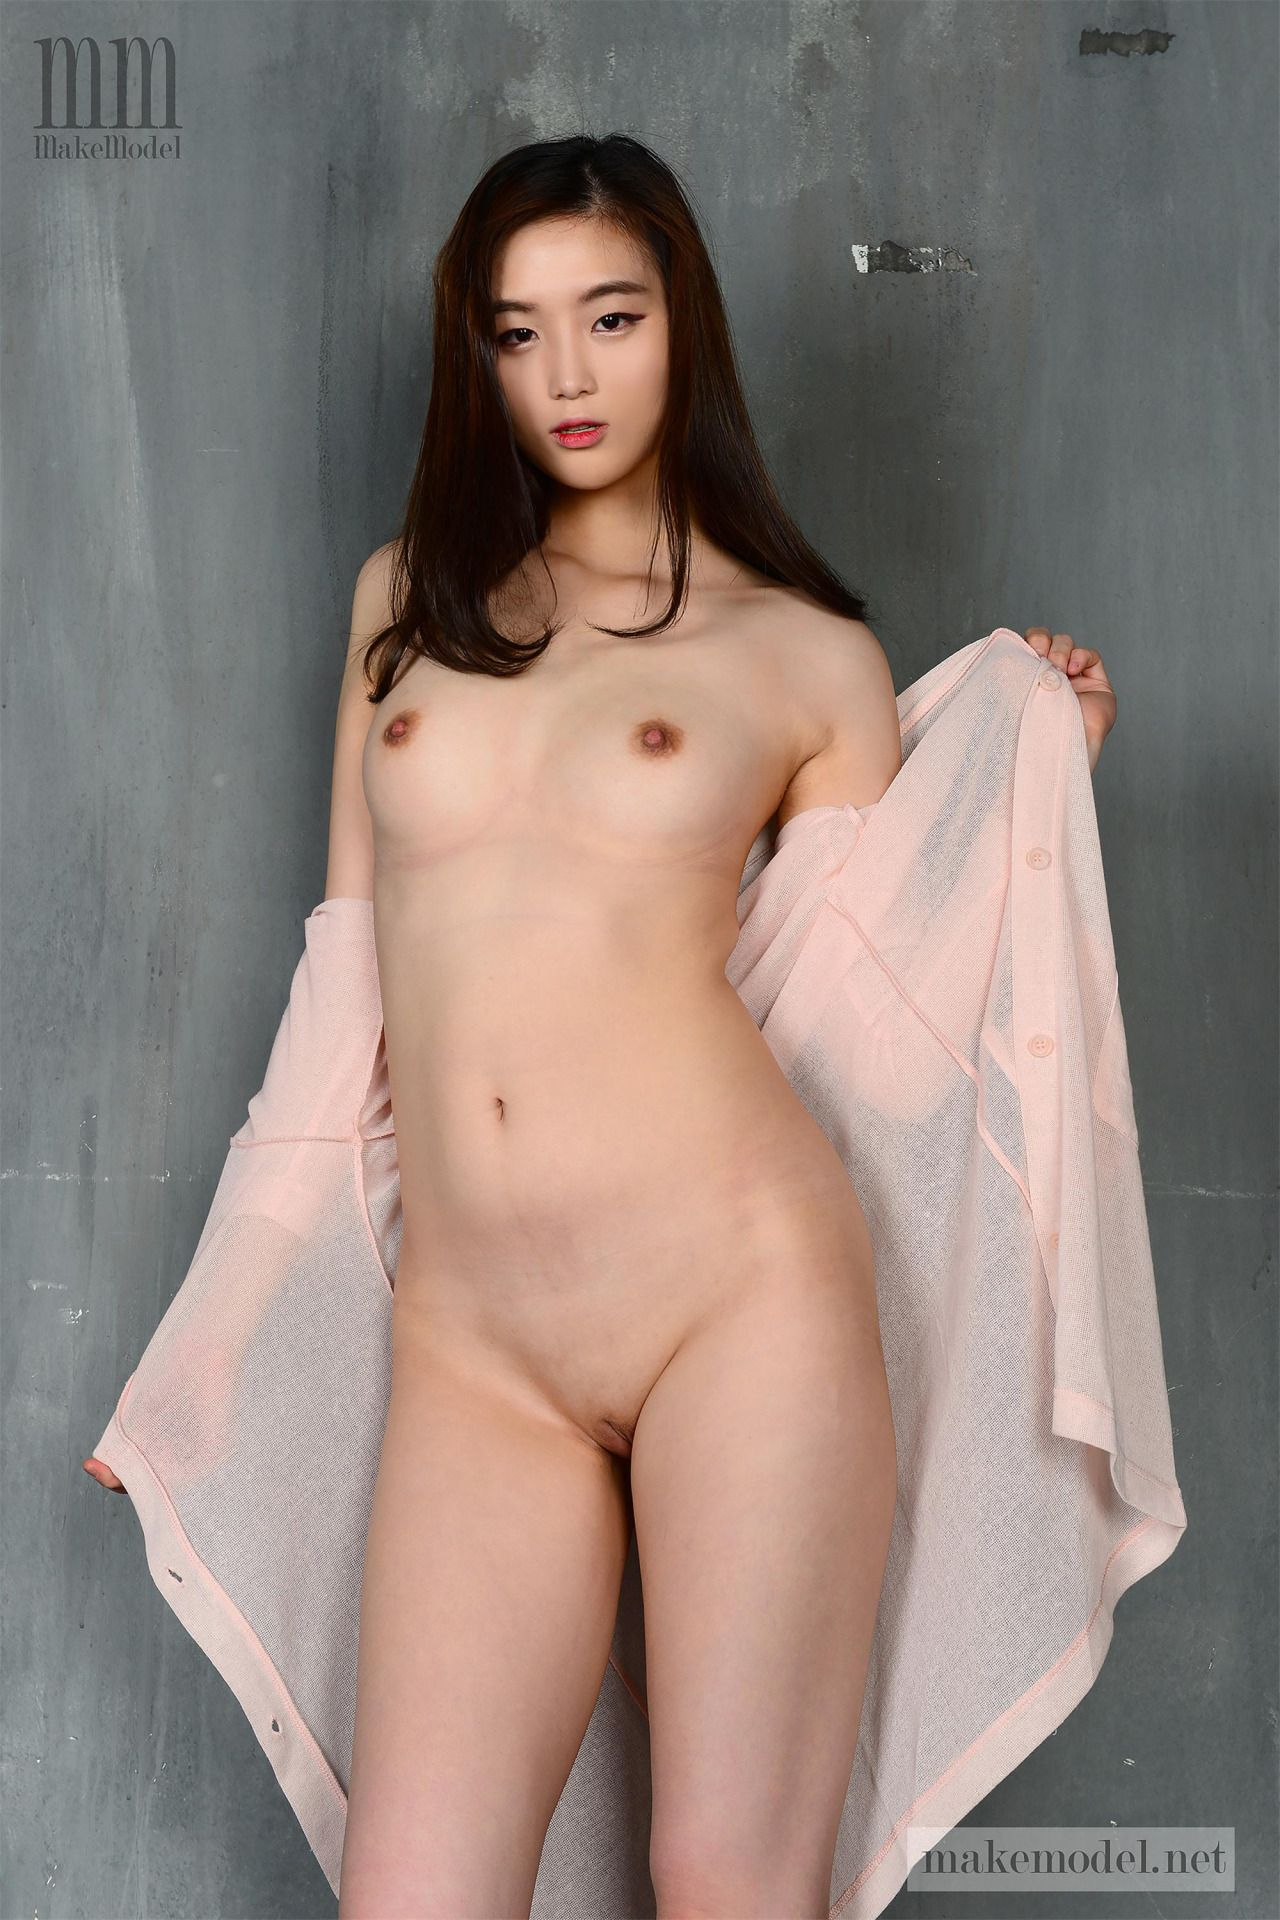 Nude post model korean, ketrina keif nyud sexy fullskrin fotos